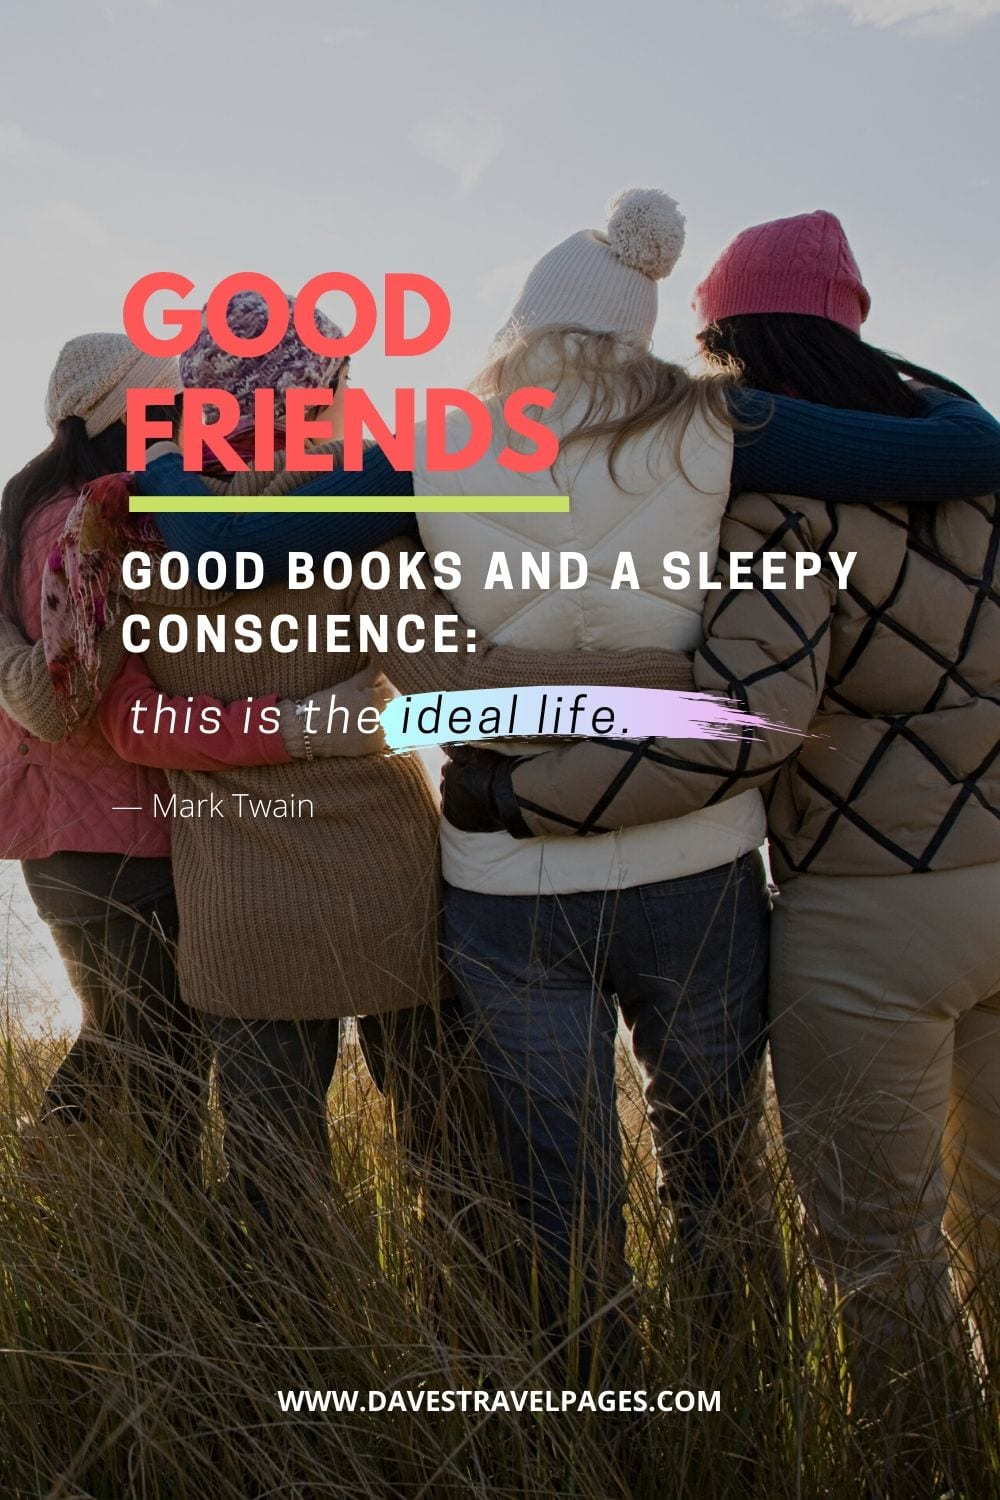 Good friends, good books and a sleepy conscience: this is the ideal life. Mark Twain